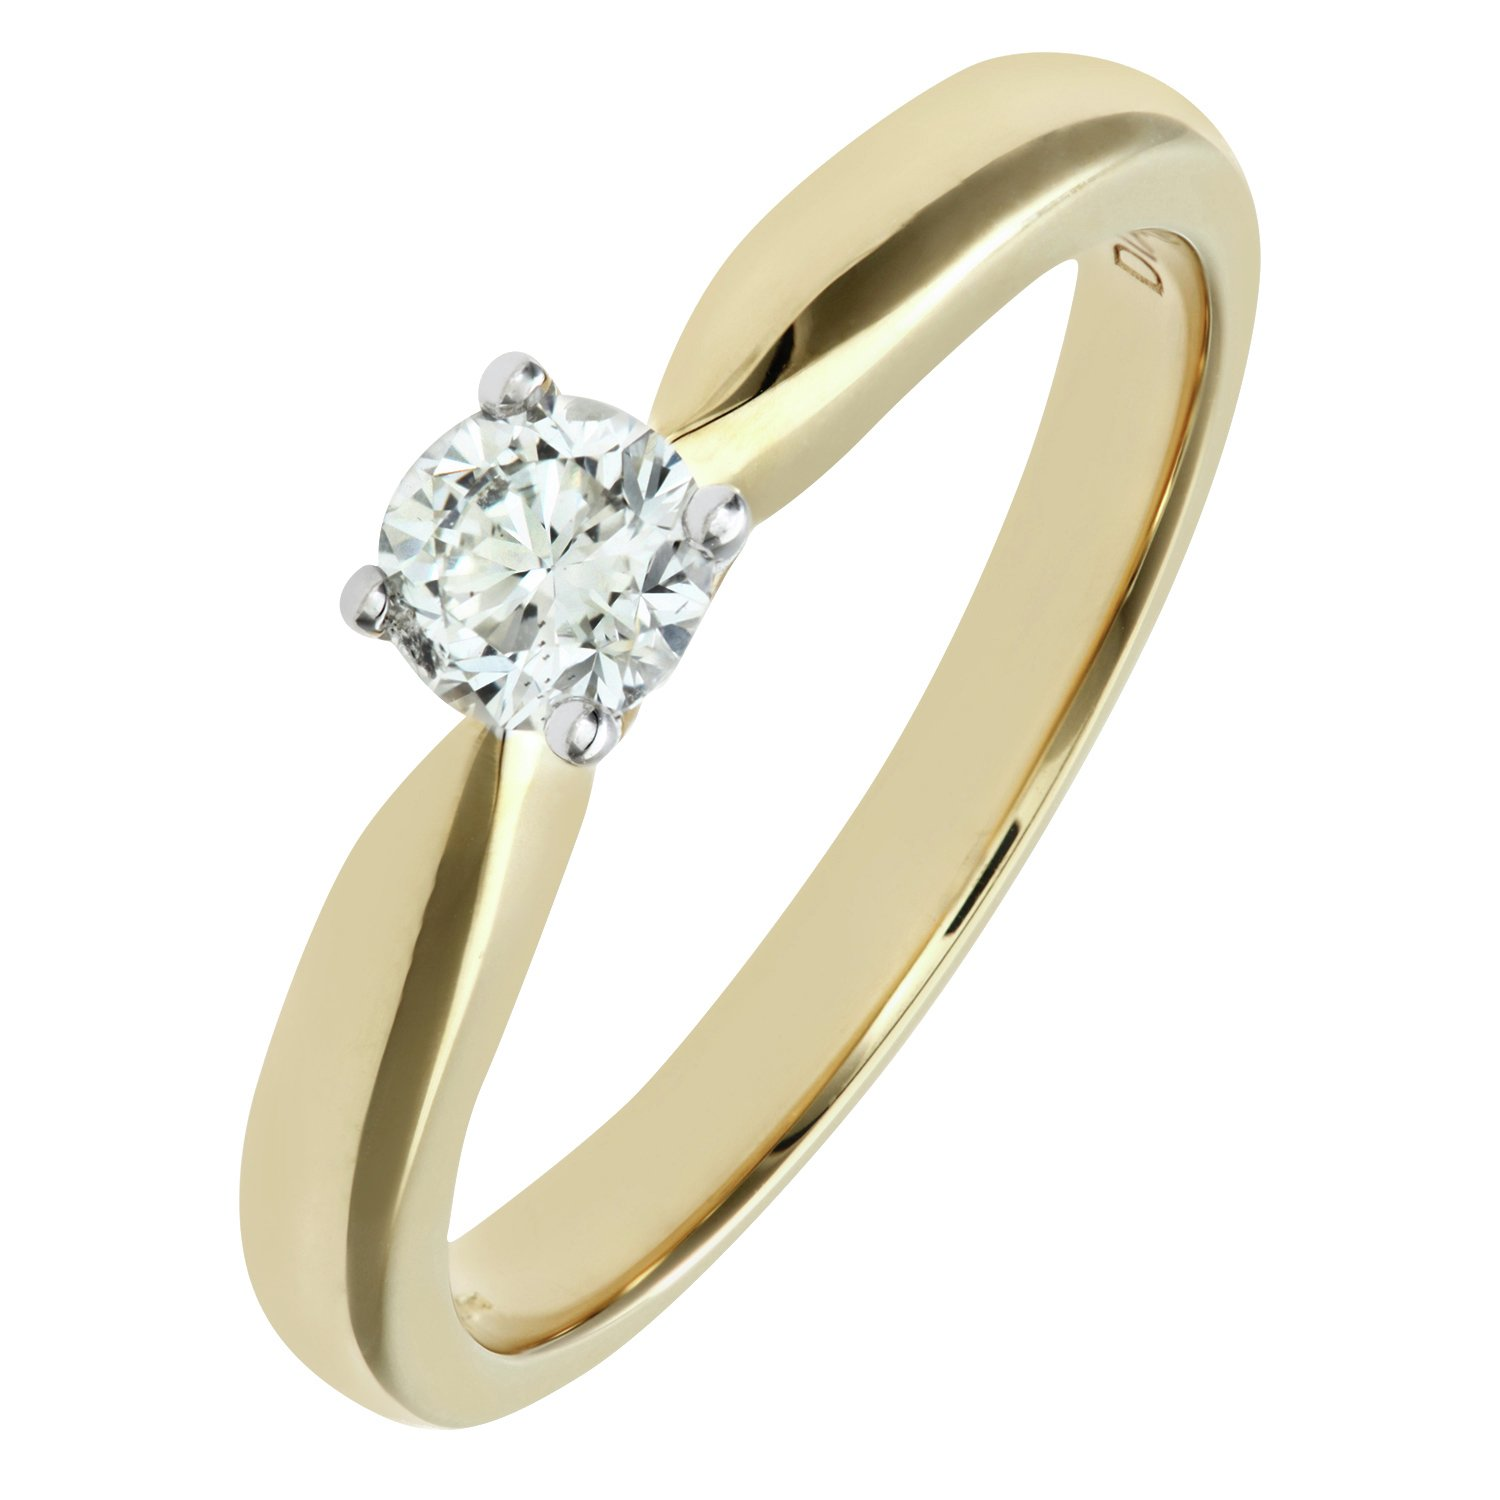 Everlasting Love Made For You - 18 Carat Gold - 033 Carat Solitaire Ring - Size W